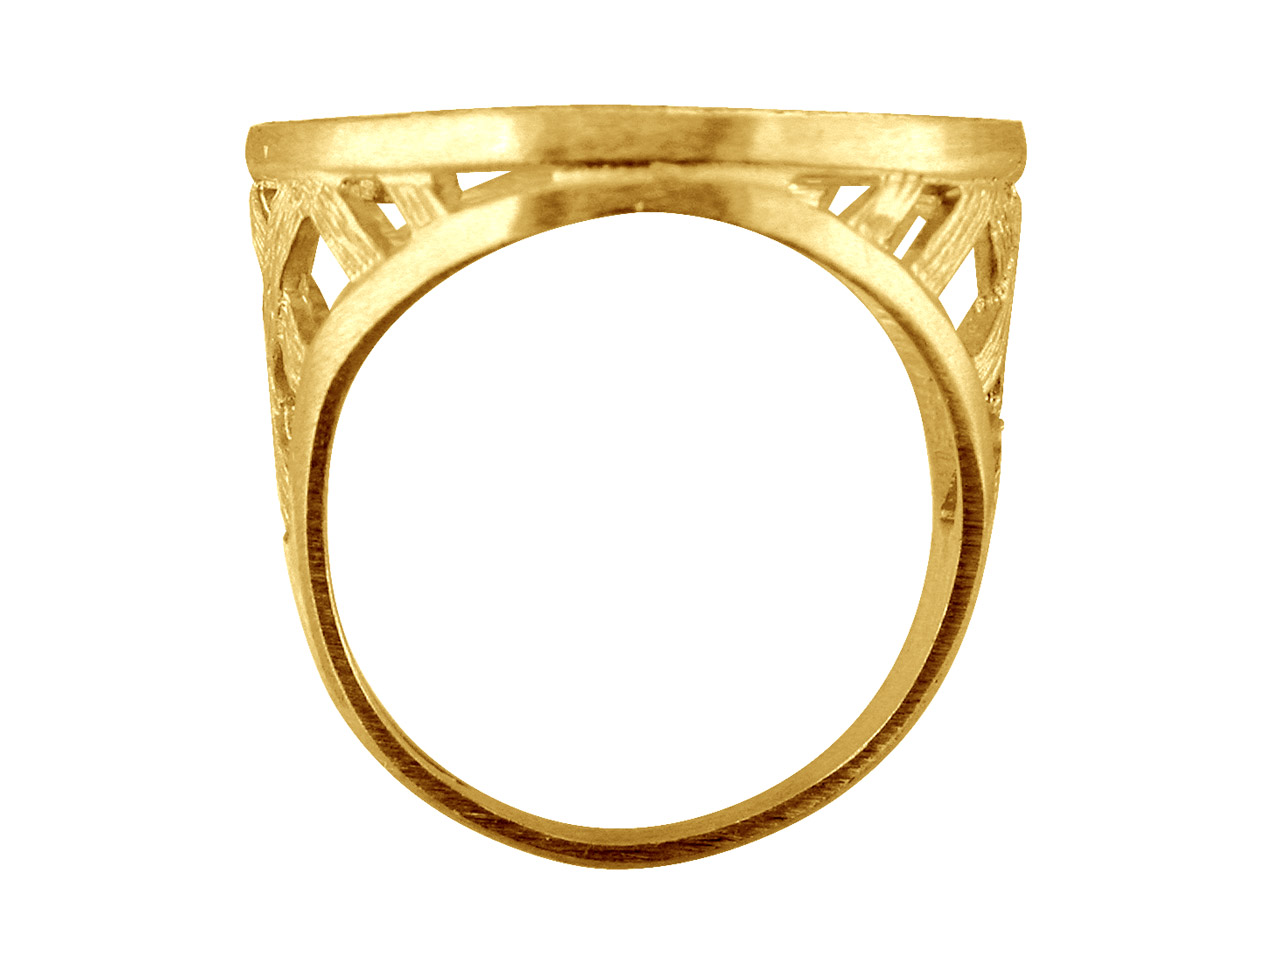 family jewellers sovereign victoria browns full jewellery rings ring image from